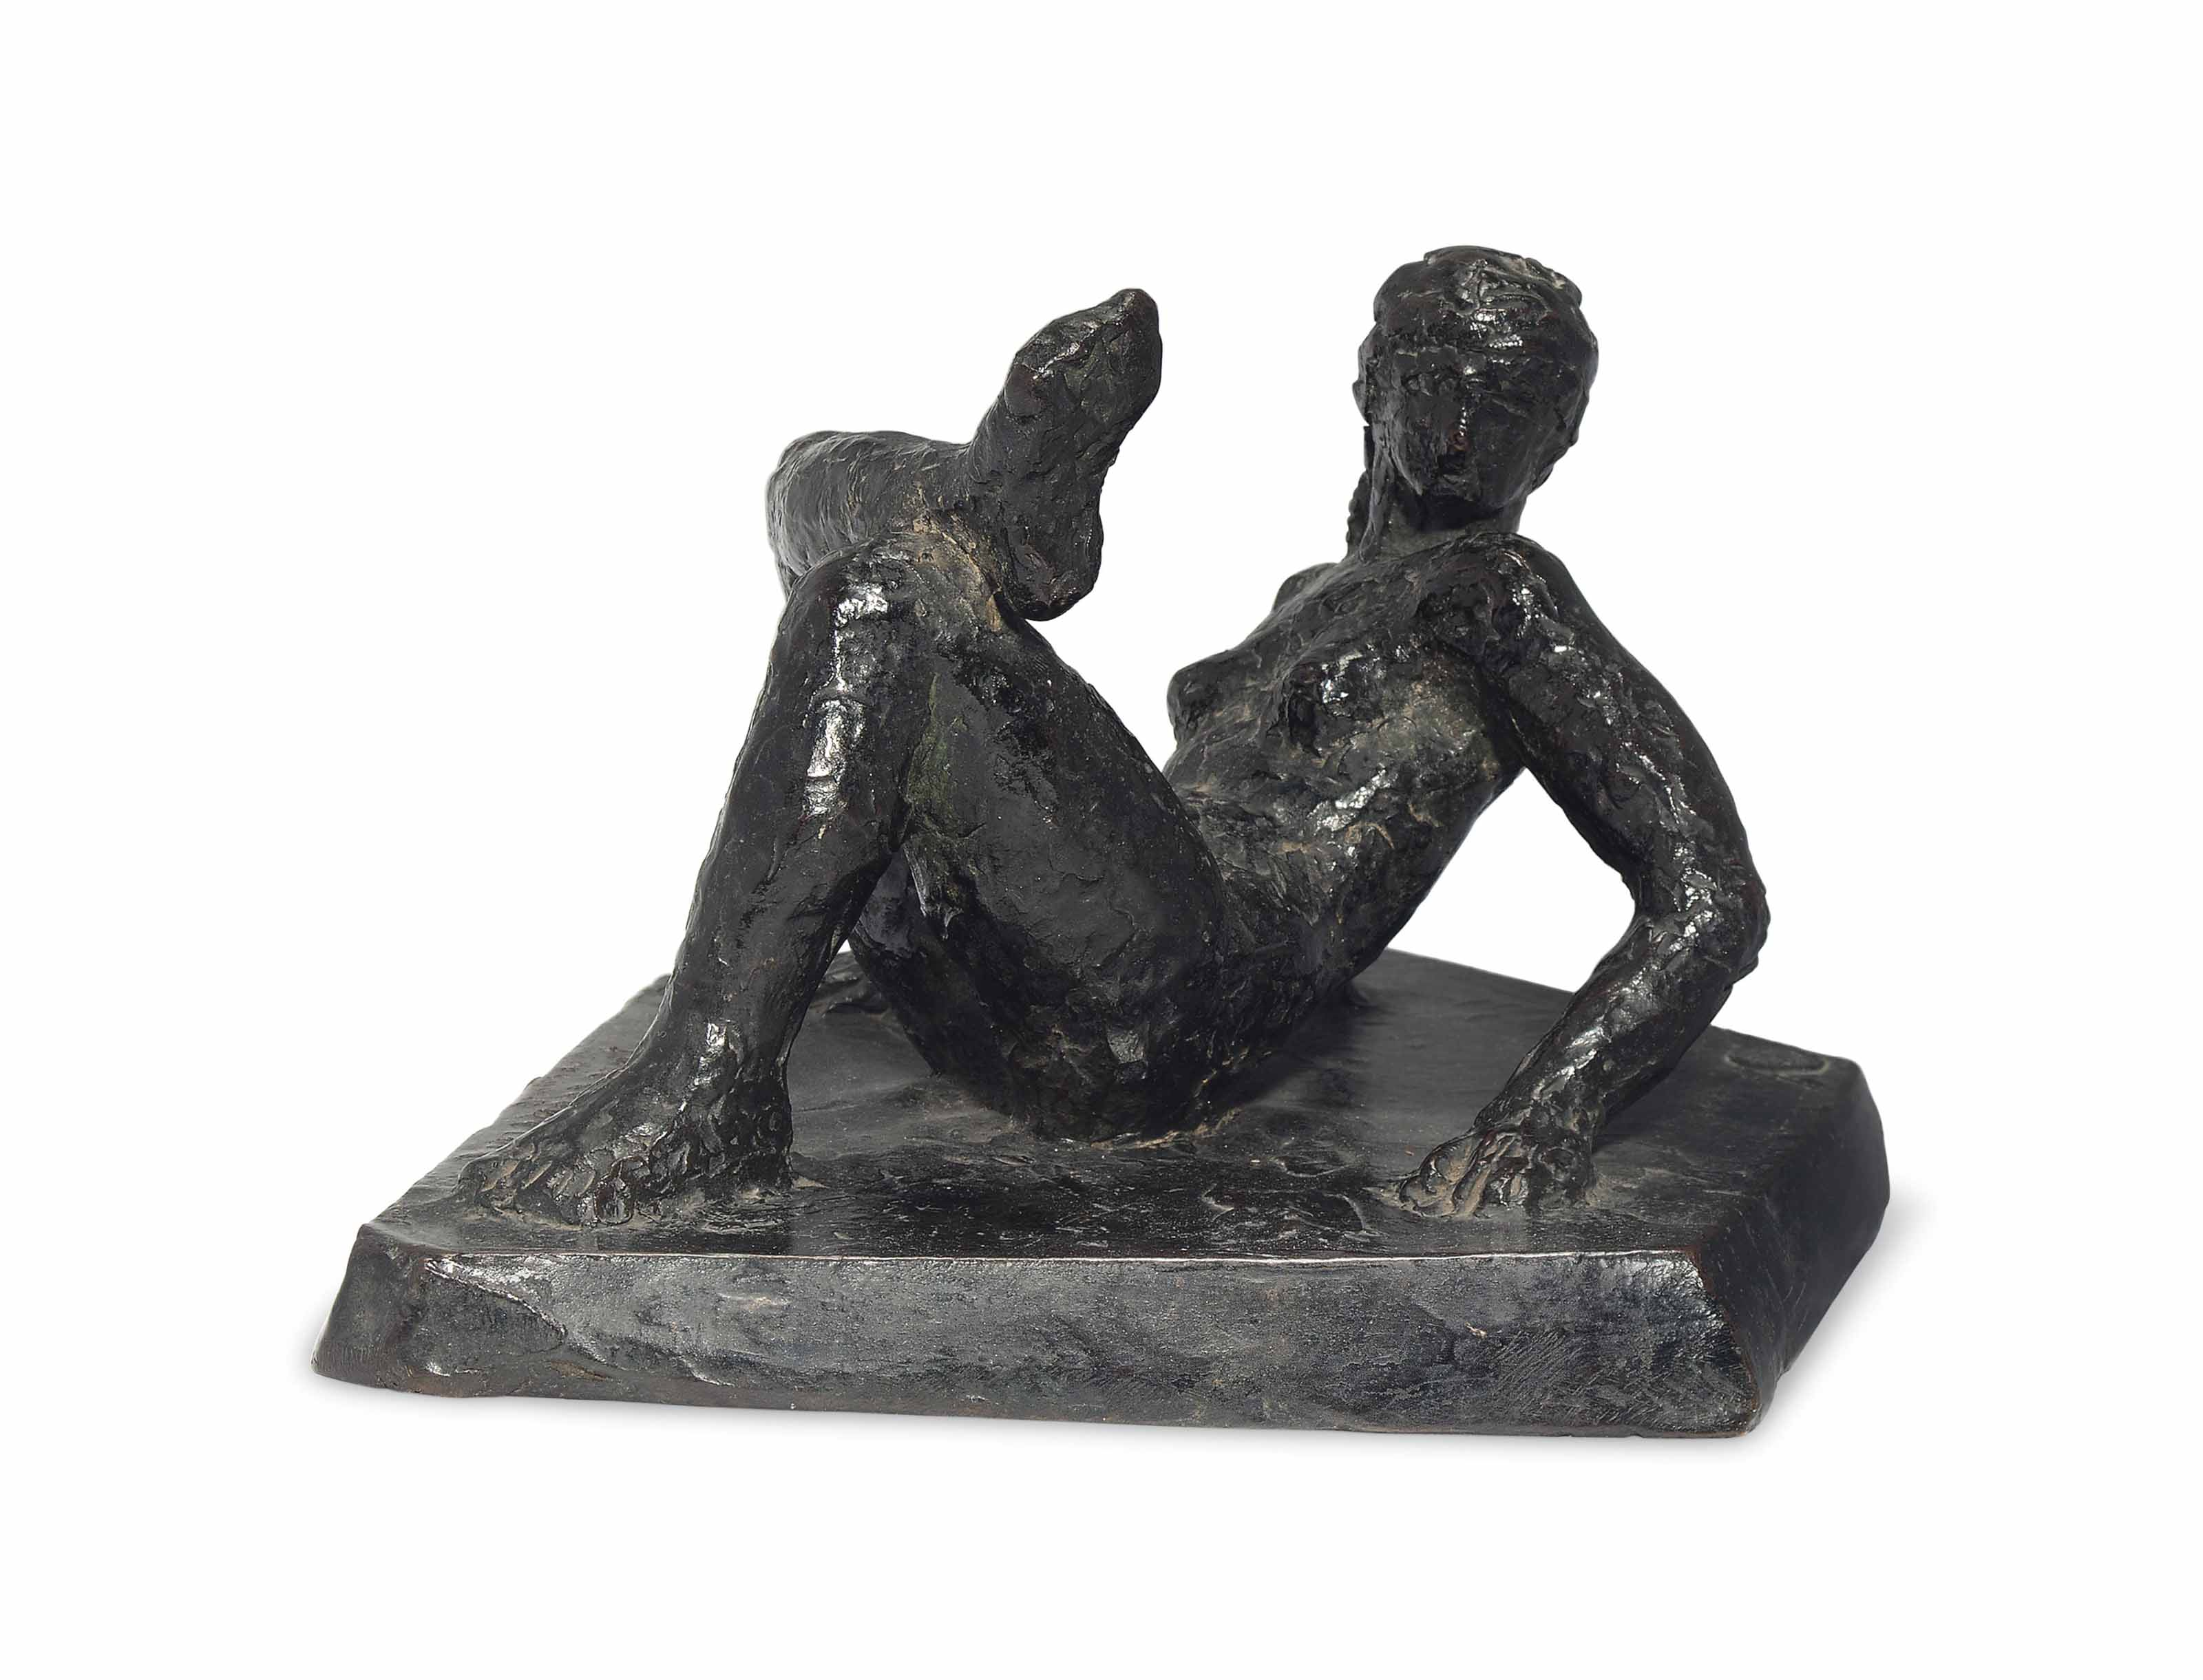 A FRENCH BRONZE FIGURE OF A NUDE